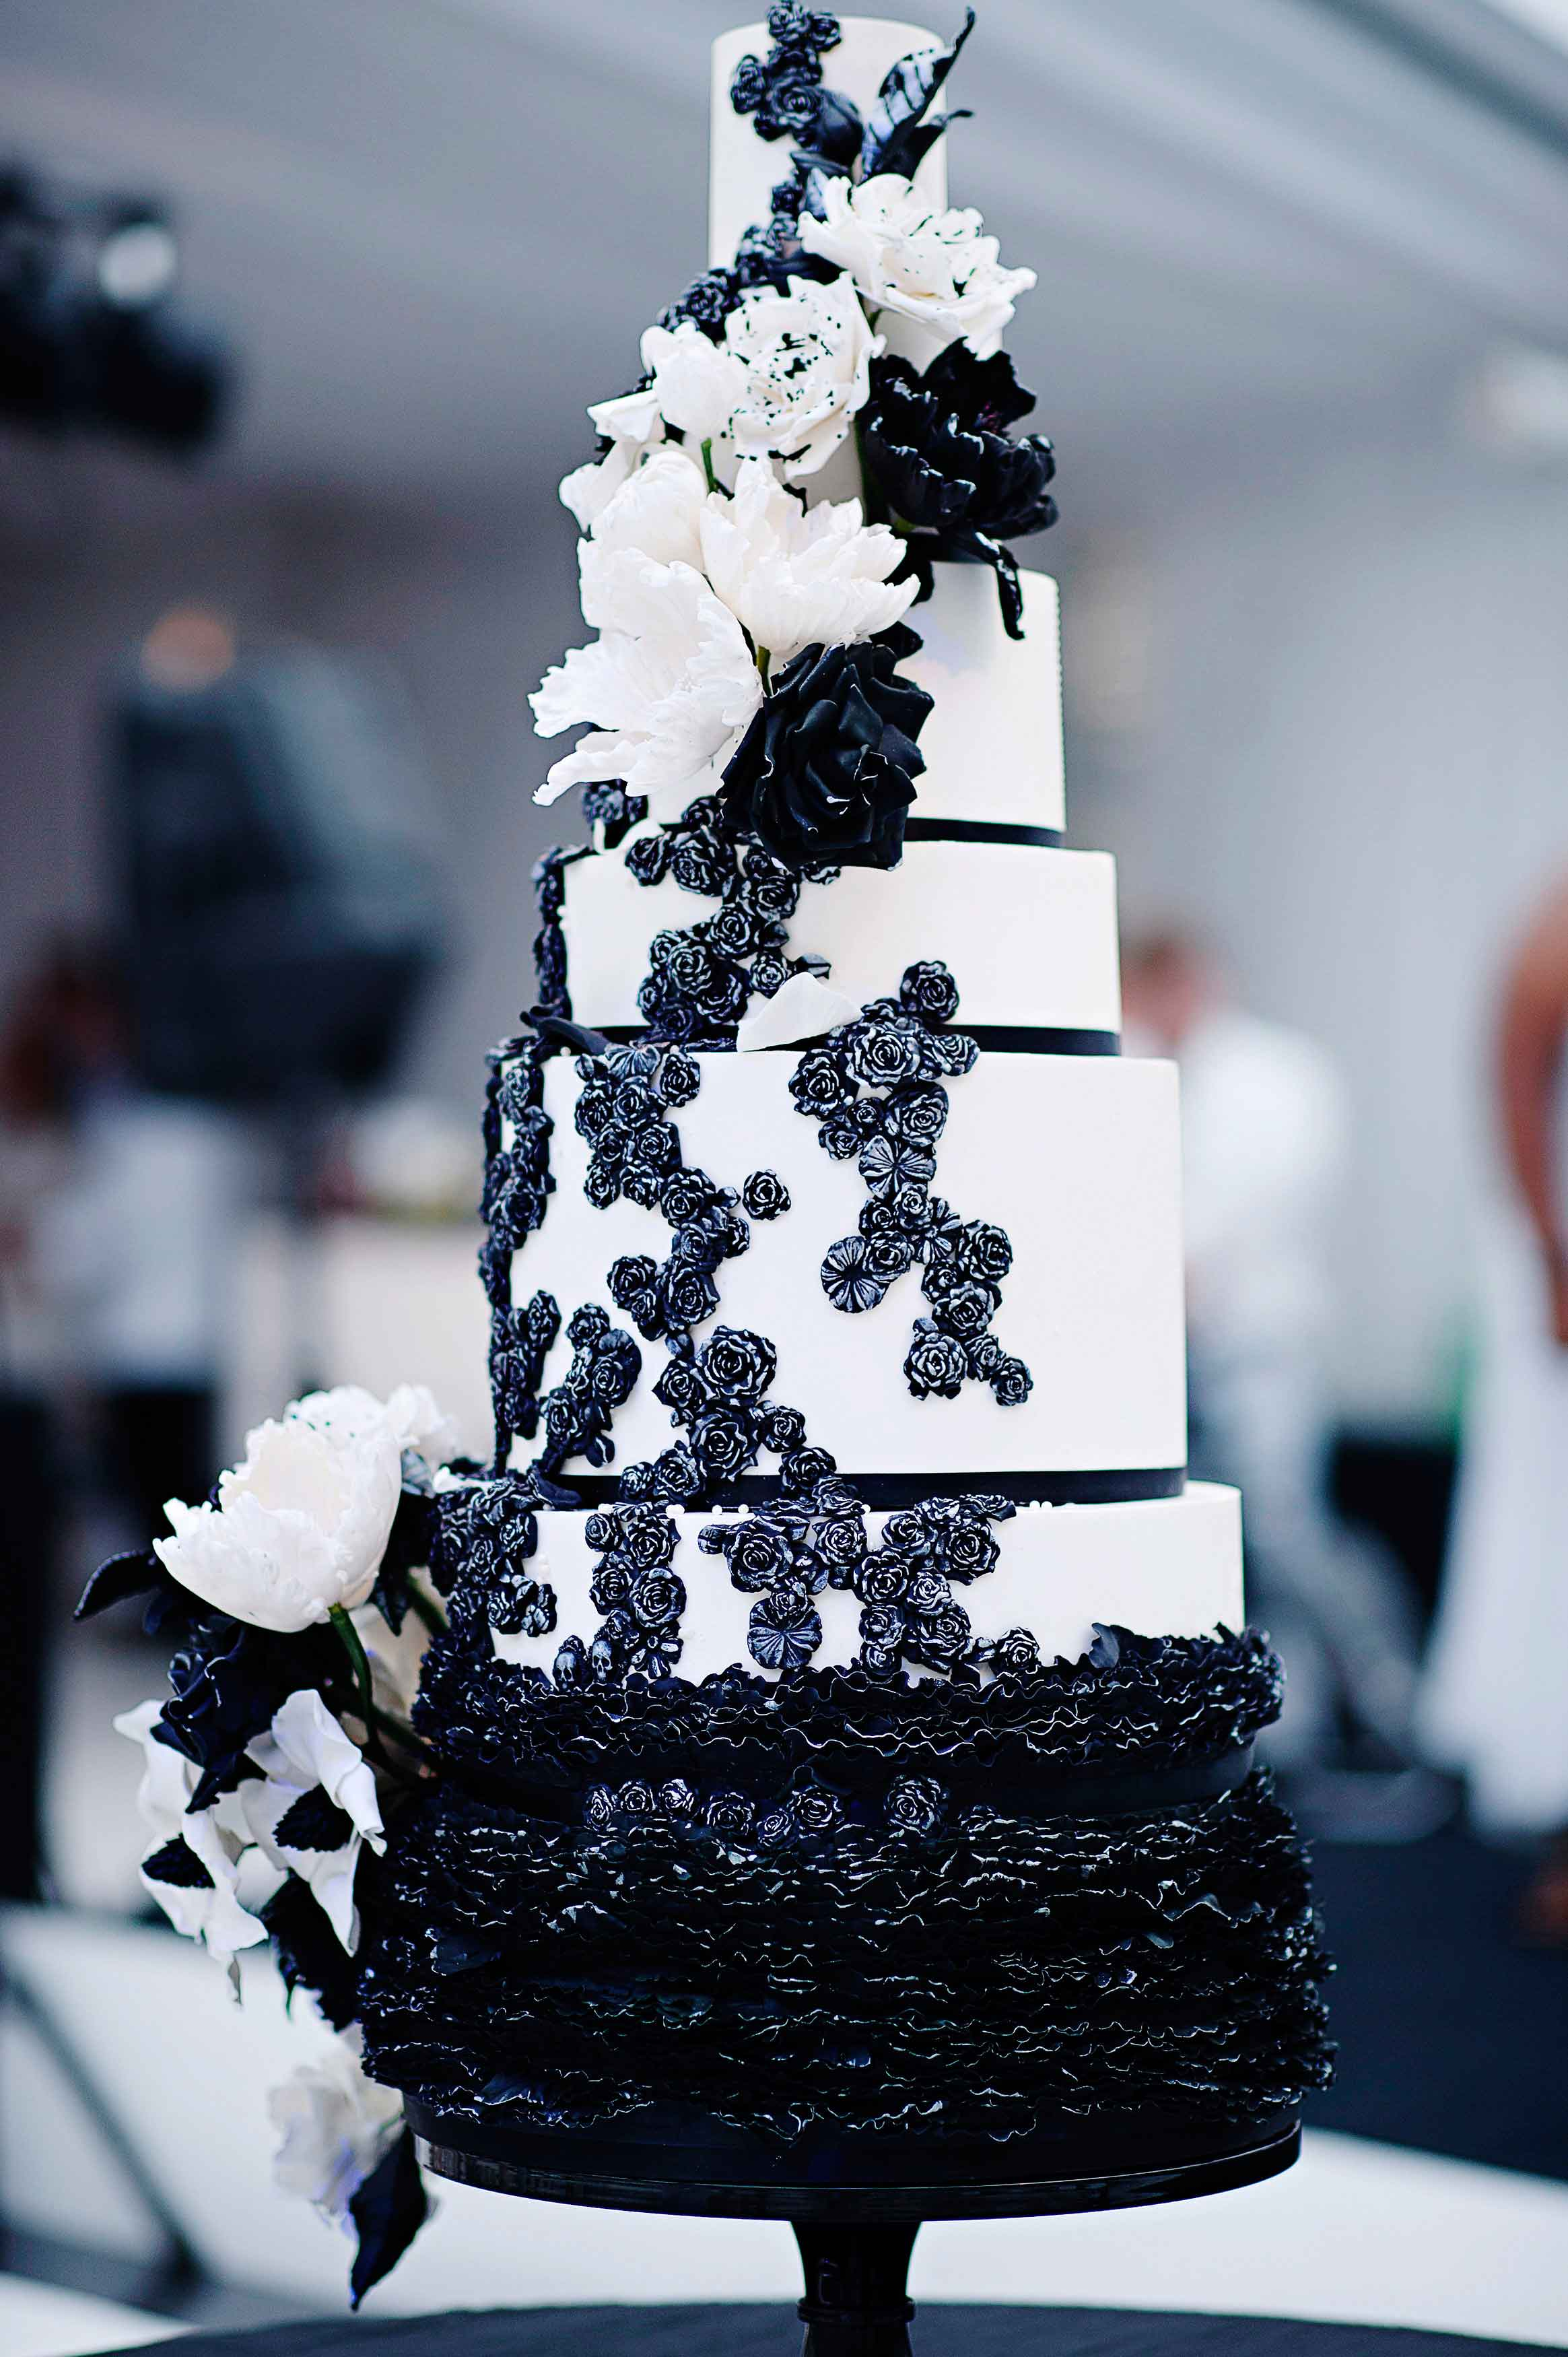 wedding cake ideas nontraditional wedding cake decorations and designs inside weddings. Black Bedroom Furniture Sets. Home Design Ideas